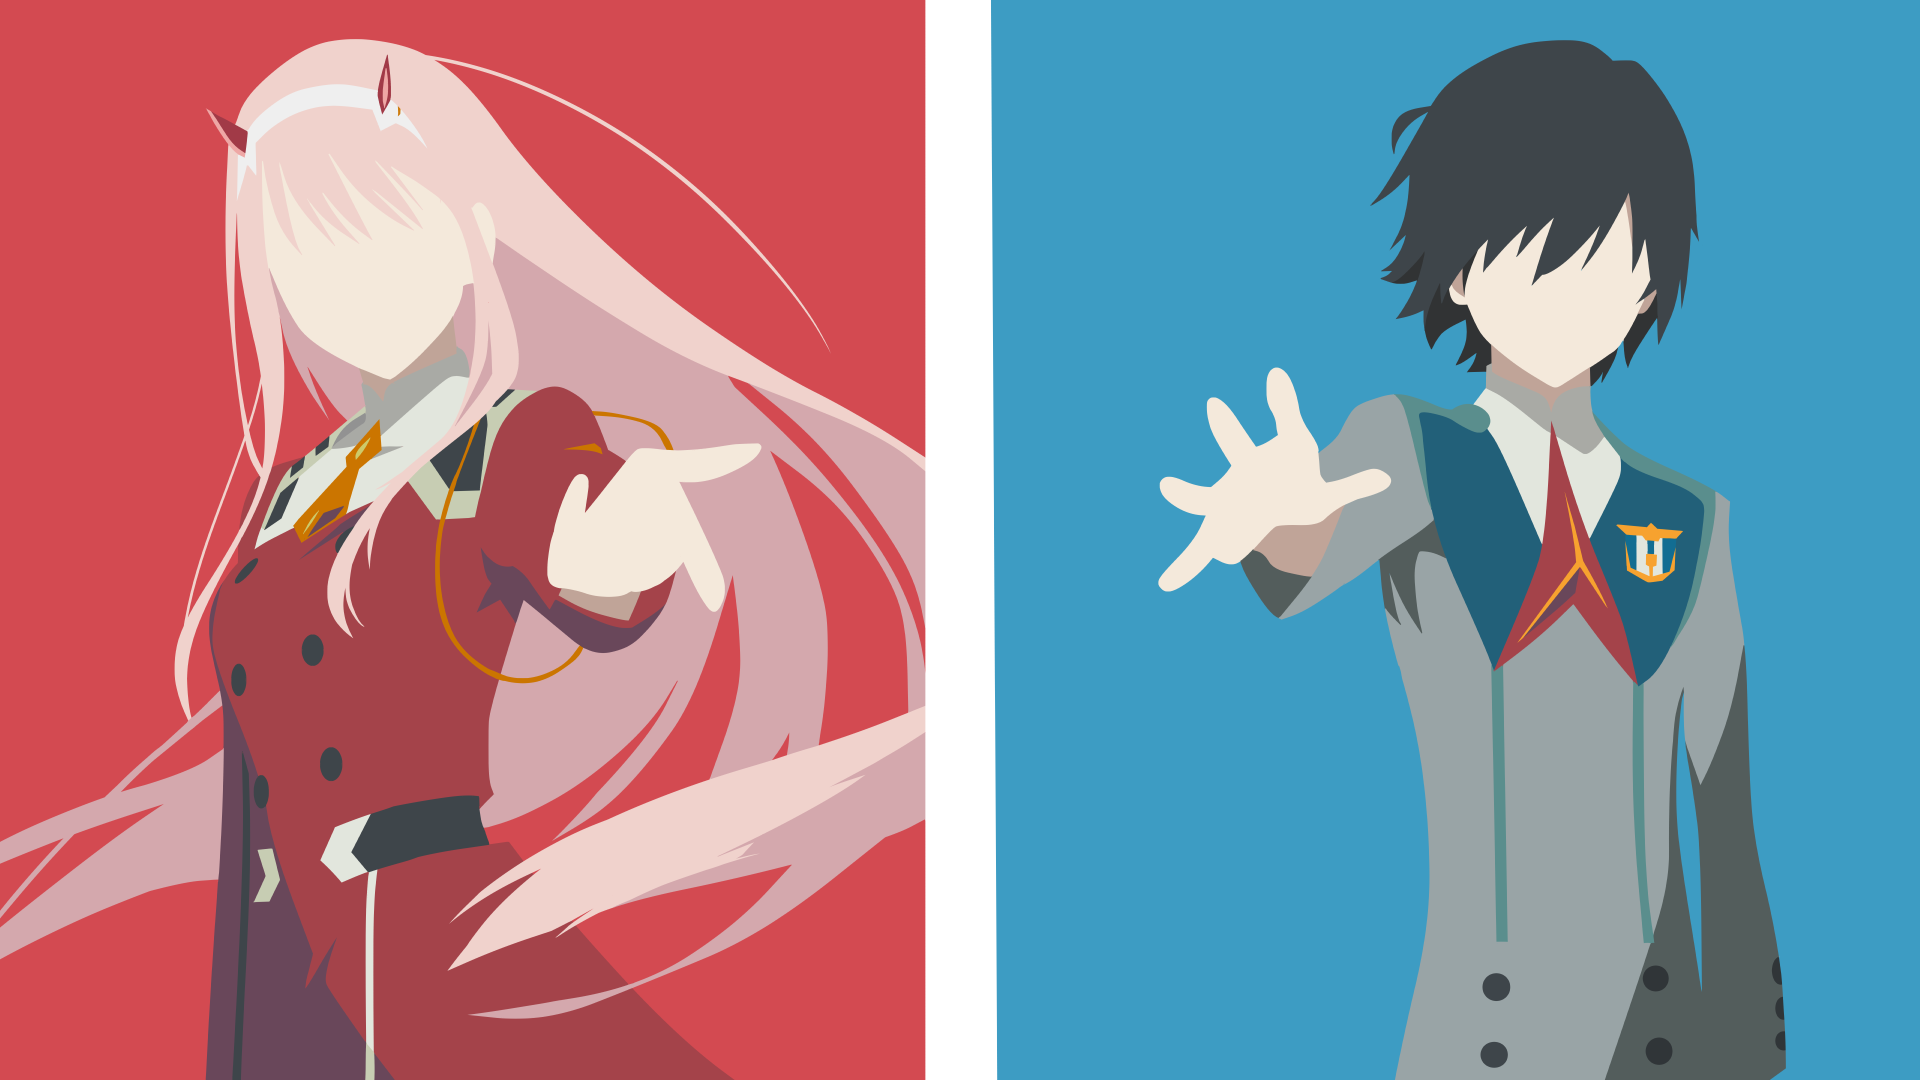 Hiro And Zero Two Darling In The Franxx V2 Hd Wallpaper